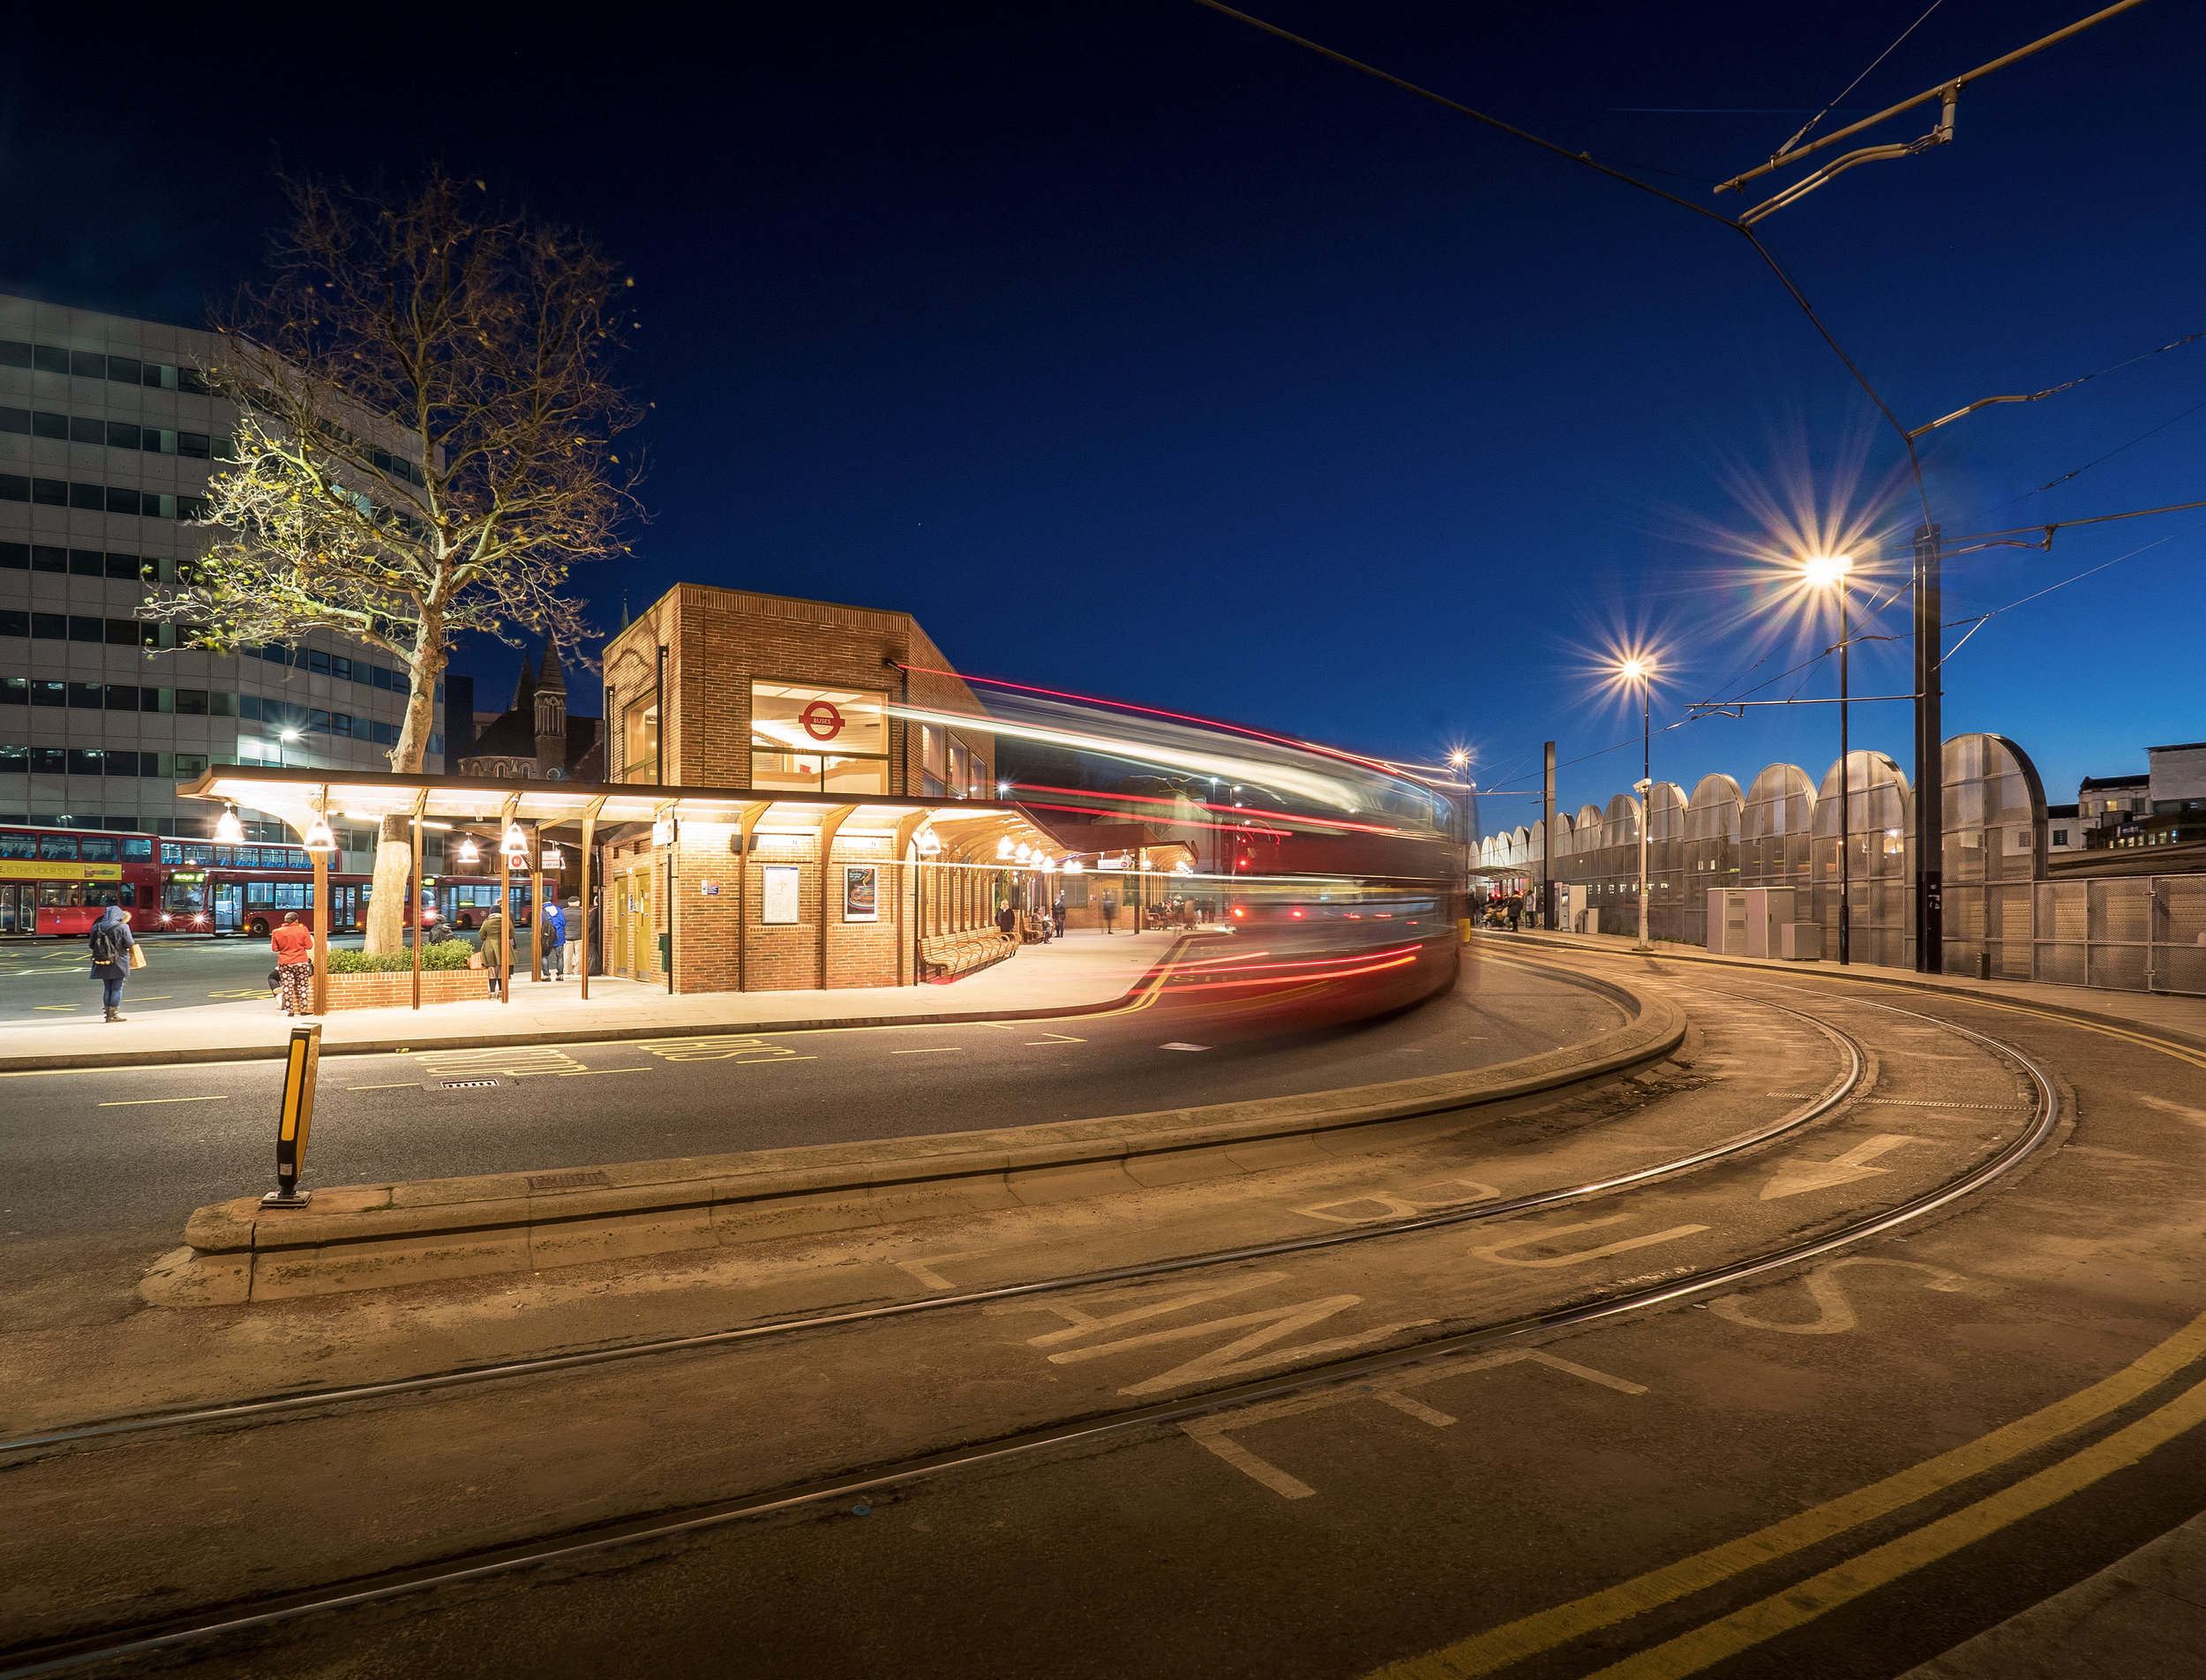 TFL's new West Croydon Bus Station sits alongside the tramlines.